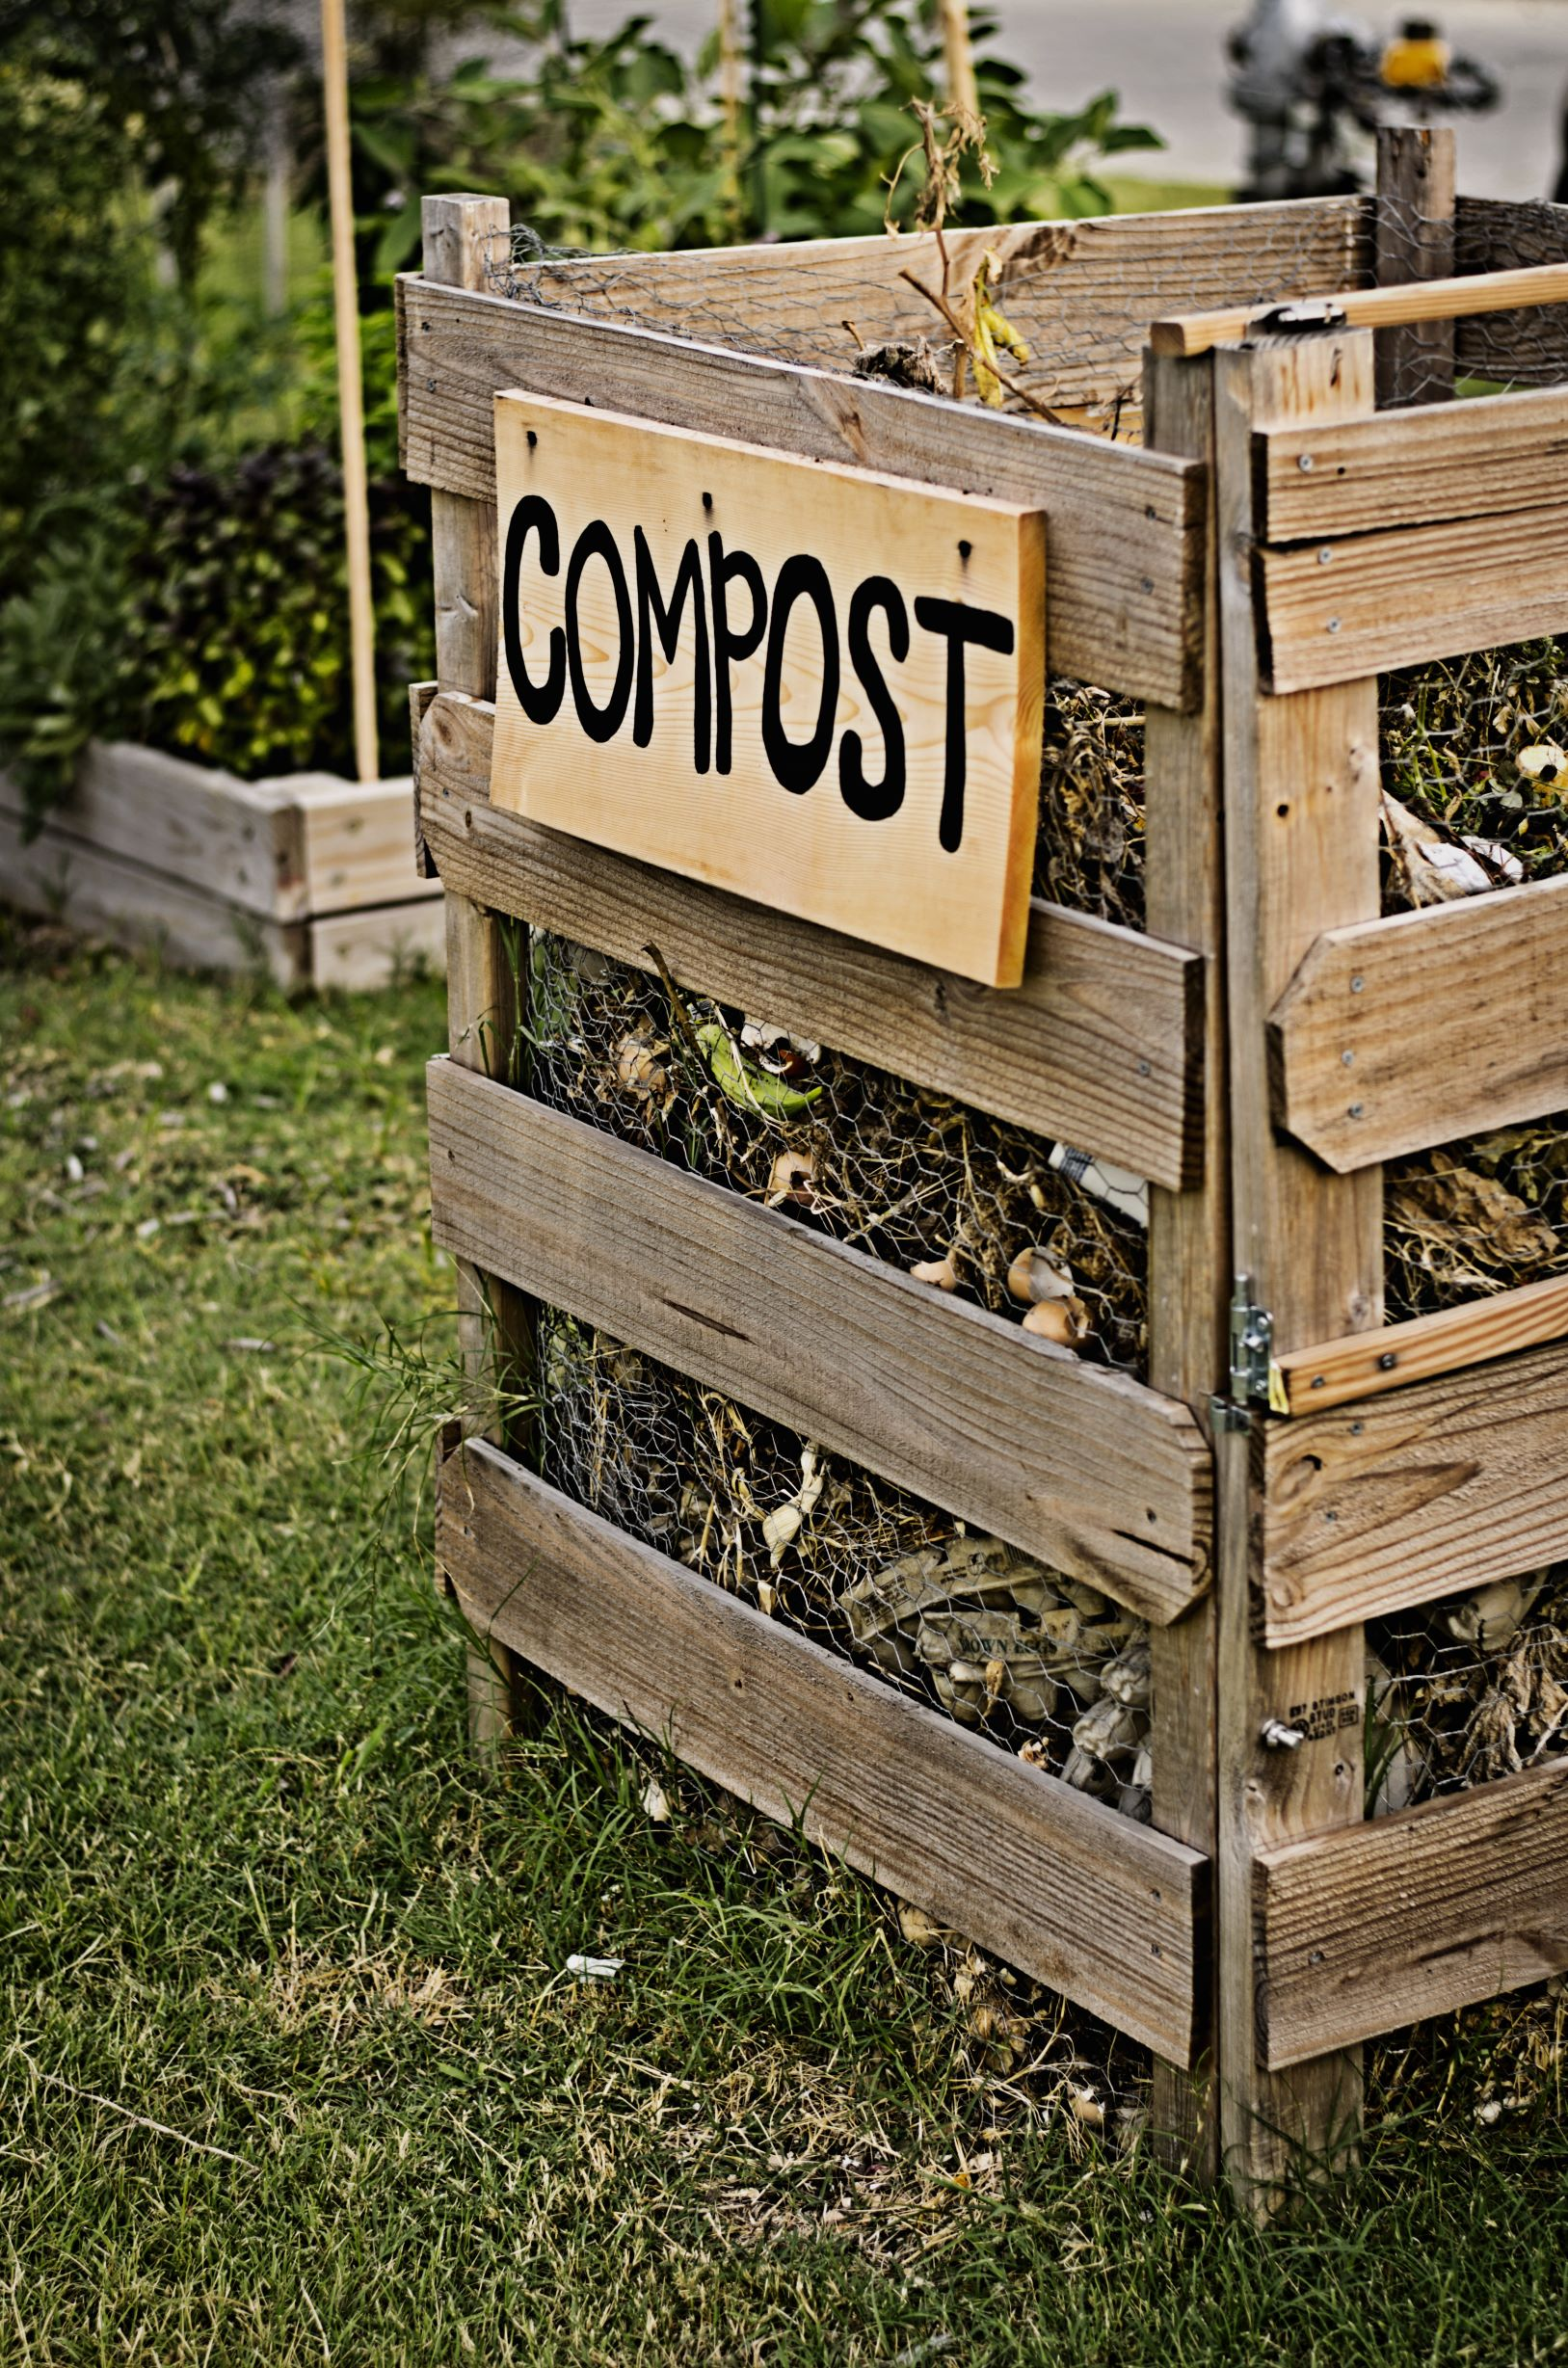 Image showing a homemade compost bin